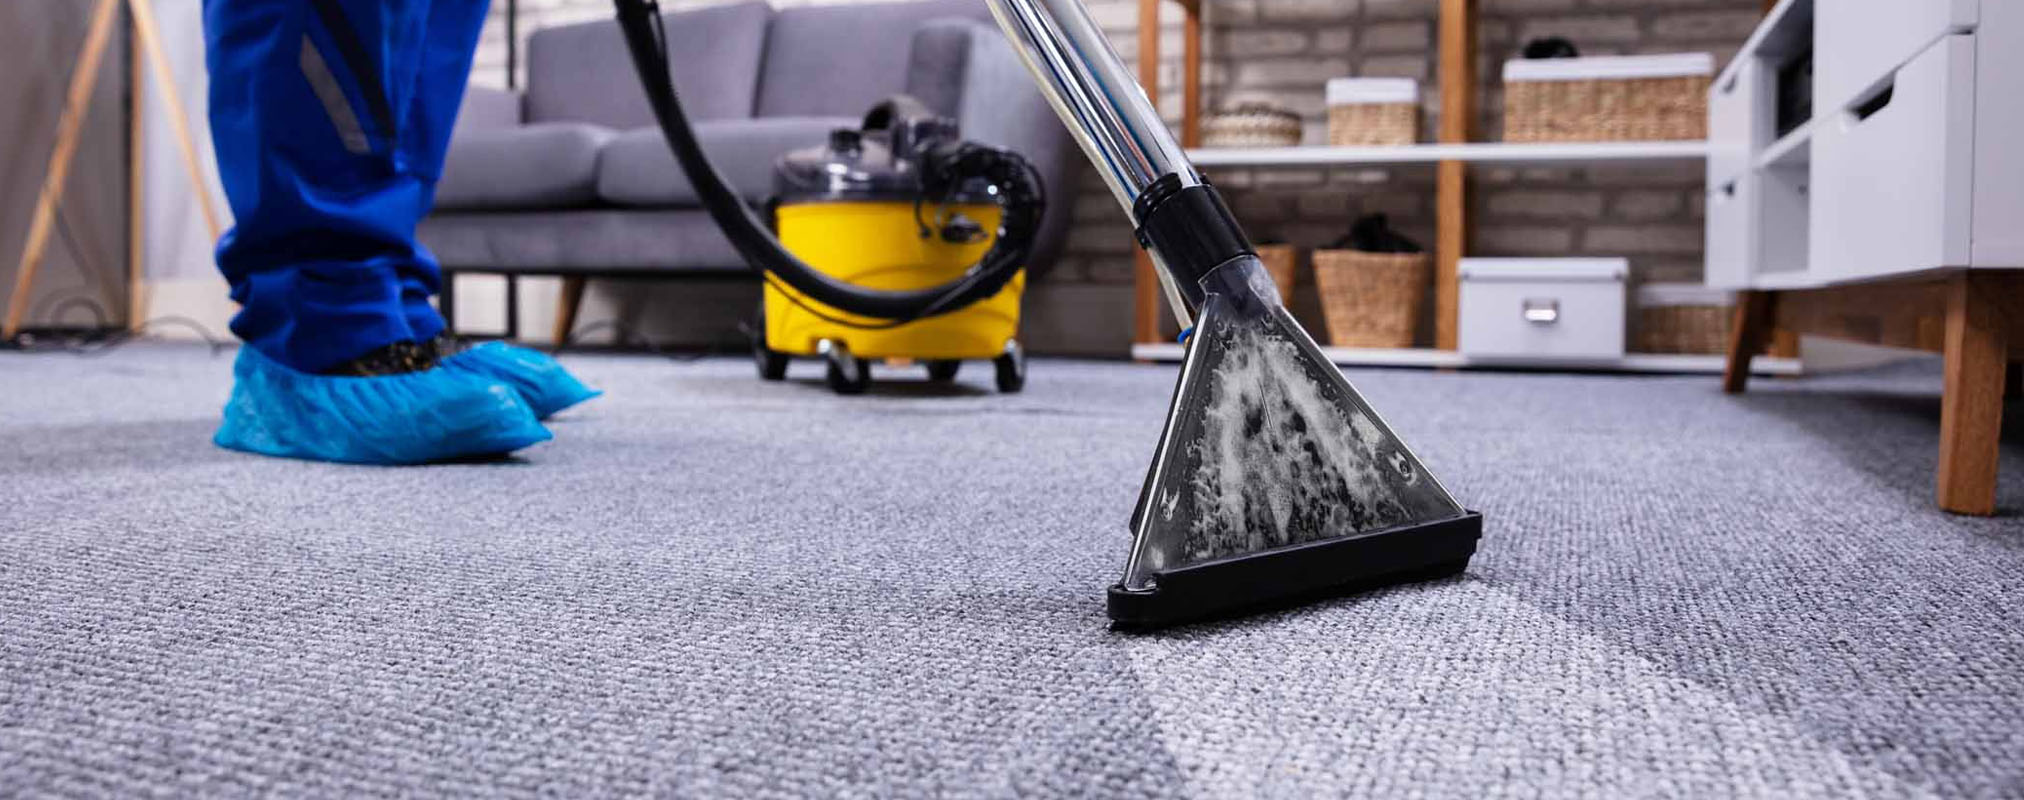 Spotless Carpet and Floor Cleaning Services in New York and Long Island